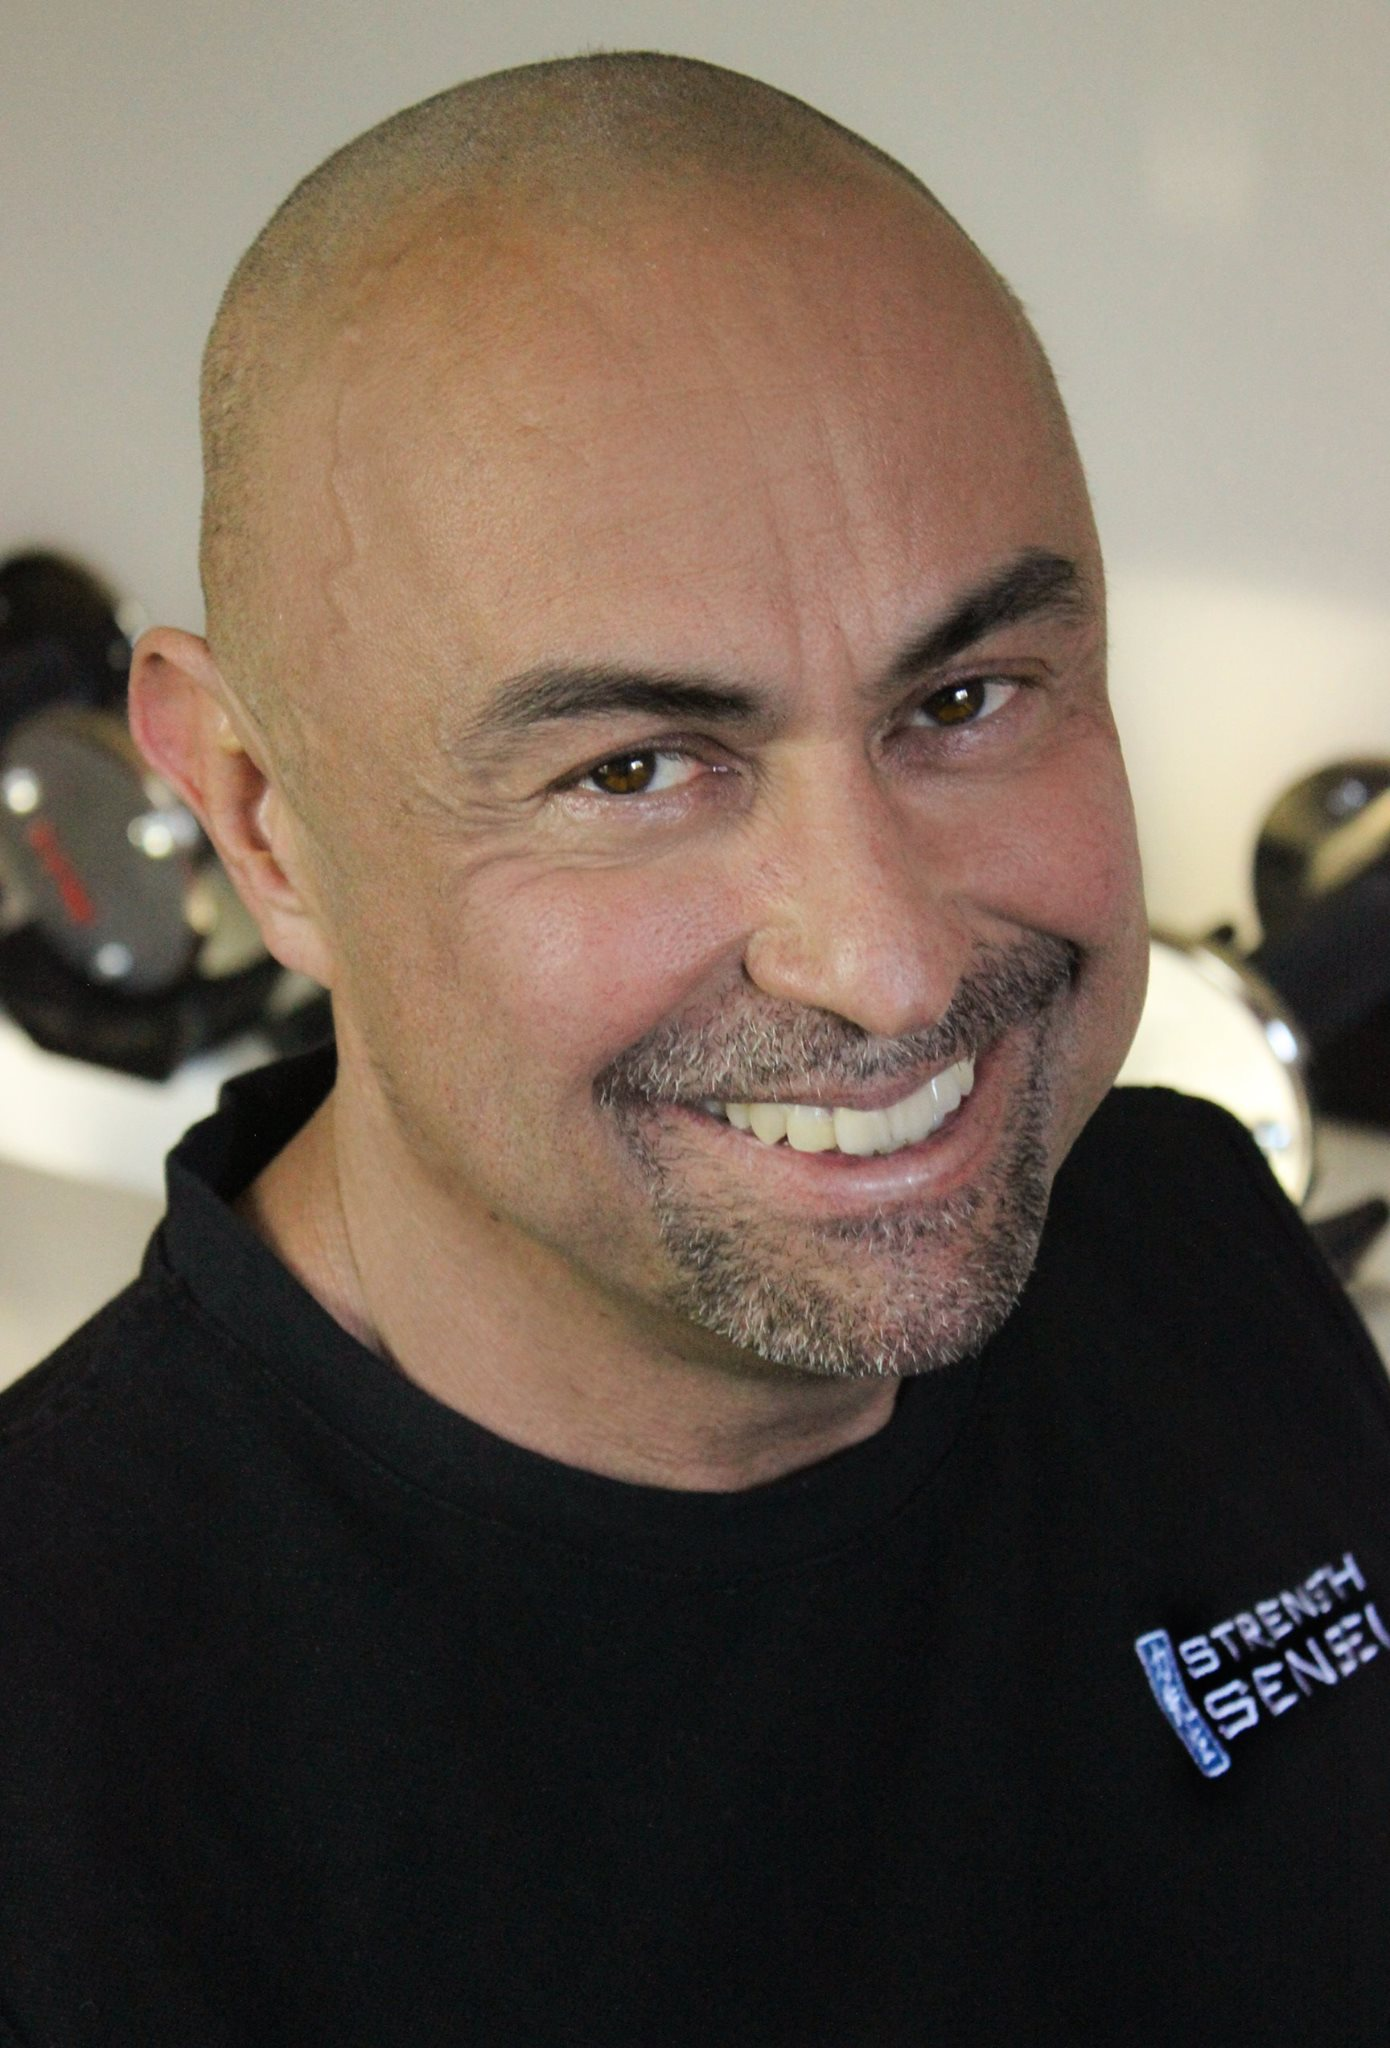 Special Edition: Aerobic Exercise May Be Destroying Your Body – Charles Poliquin #537